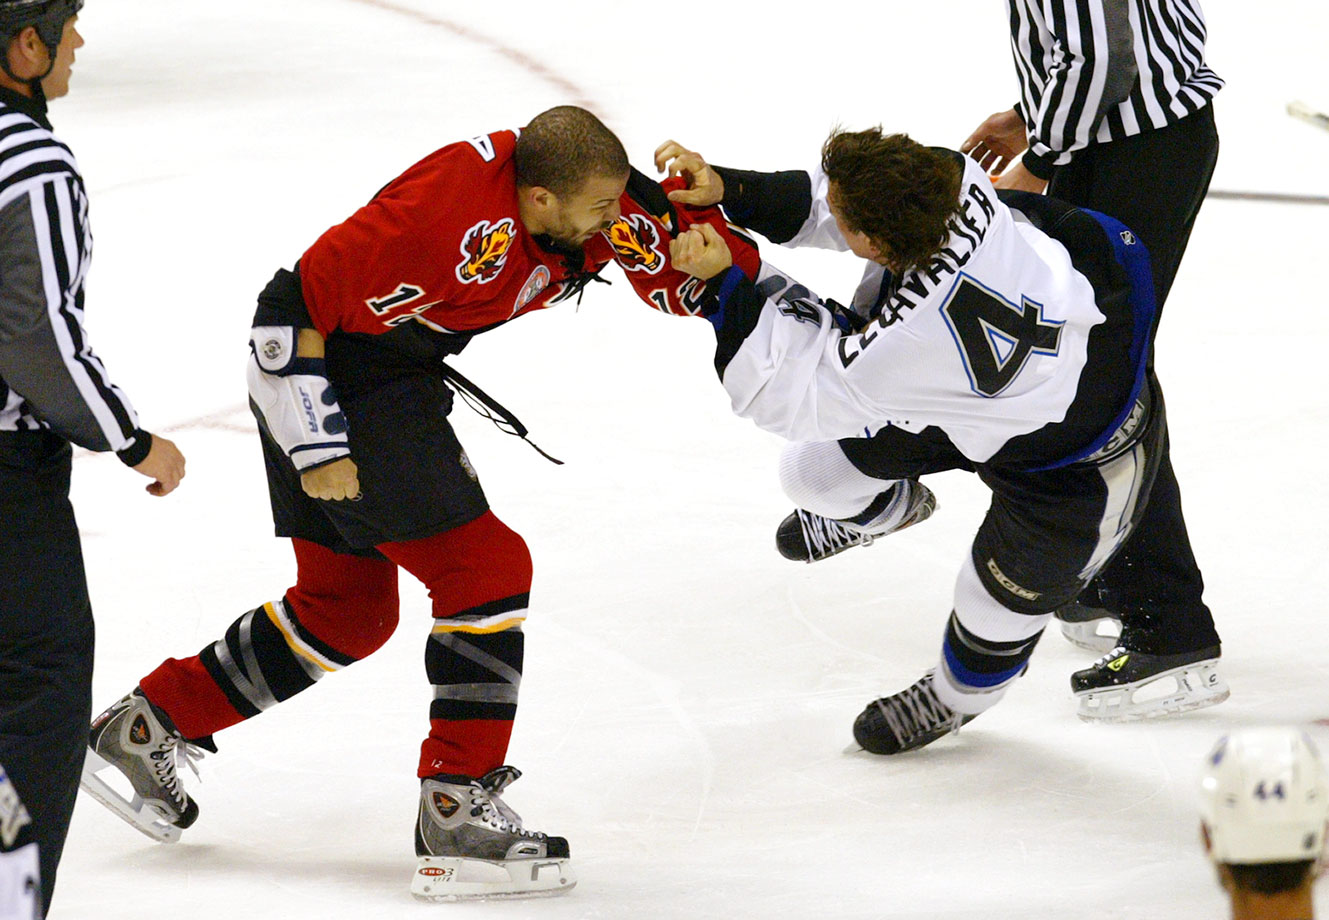 Though the Tampa Bay star lost this memorable bout against Calgary's captain in Game 3, and his team lost the game 3-0, falling behind in the series two games to one, the Lightning were sparked by his courage and went on to win the series in seven.